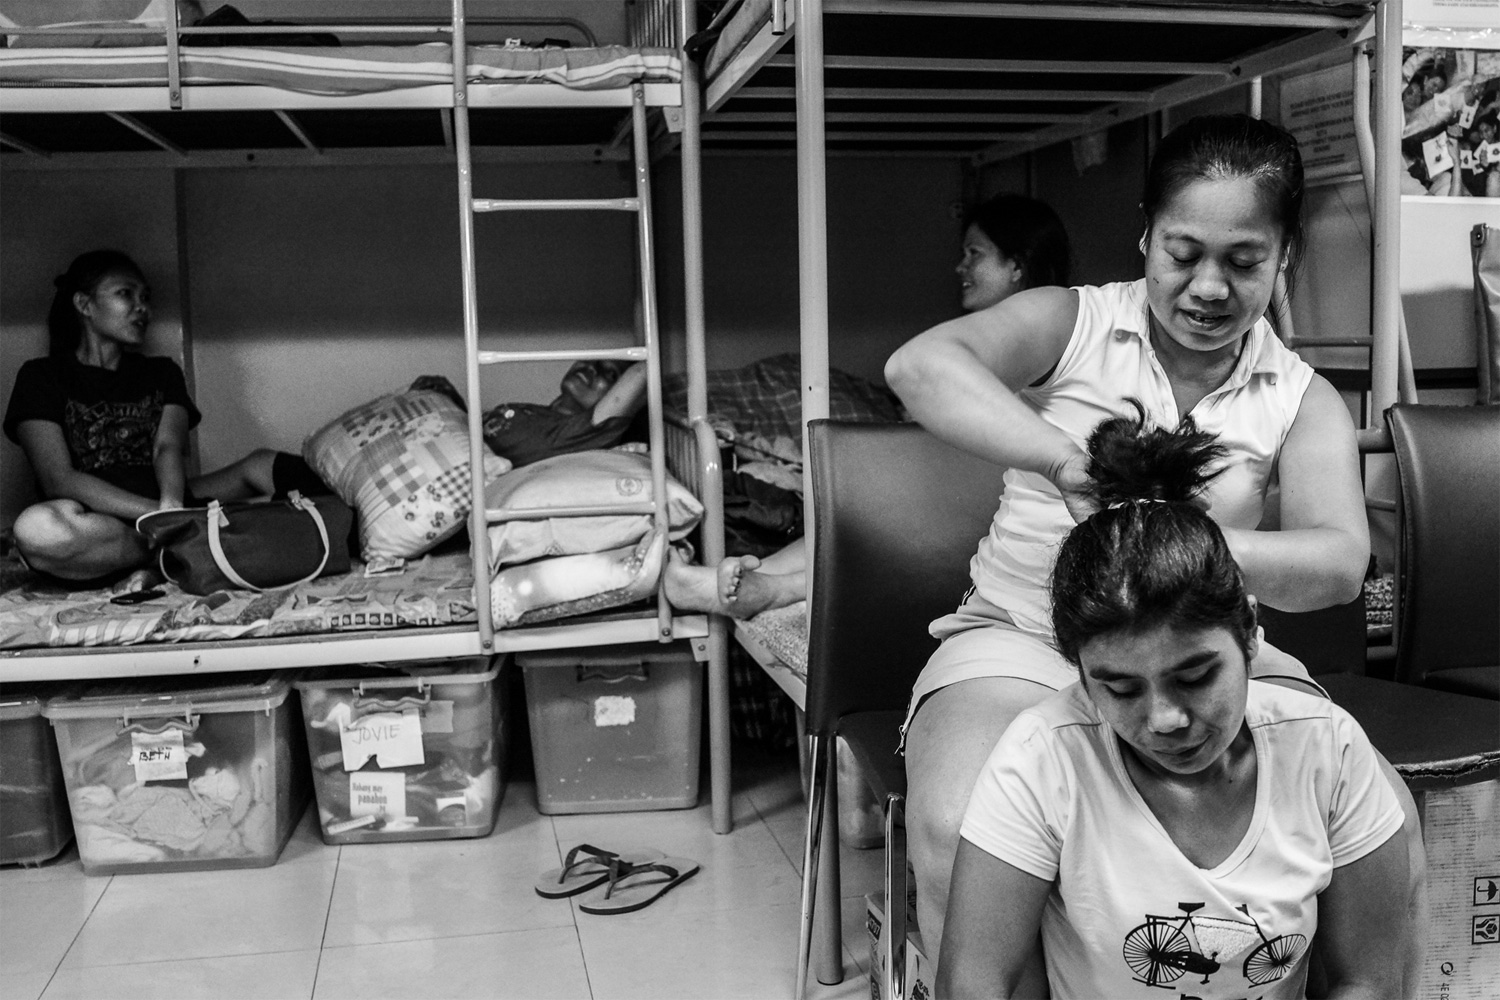 Judy, a caretaker in Bethune House, helps Aniya, an Indonesian domestic worker, fix her hair in the sleeping/common area in the shelter. Aniya says she ran away from her employer after working without pay for more than a year. She says her employer brought her to mainland China to work under terrible living conditions for more than a year. Because she was hired under Hong Kong labor laws, bringing her to the mainland to work was illegal. Aniya cannot read or speak English or Cantonese, and she did not pursue a case against her employer. She says she just wants to go home to Indonesia.